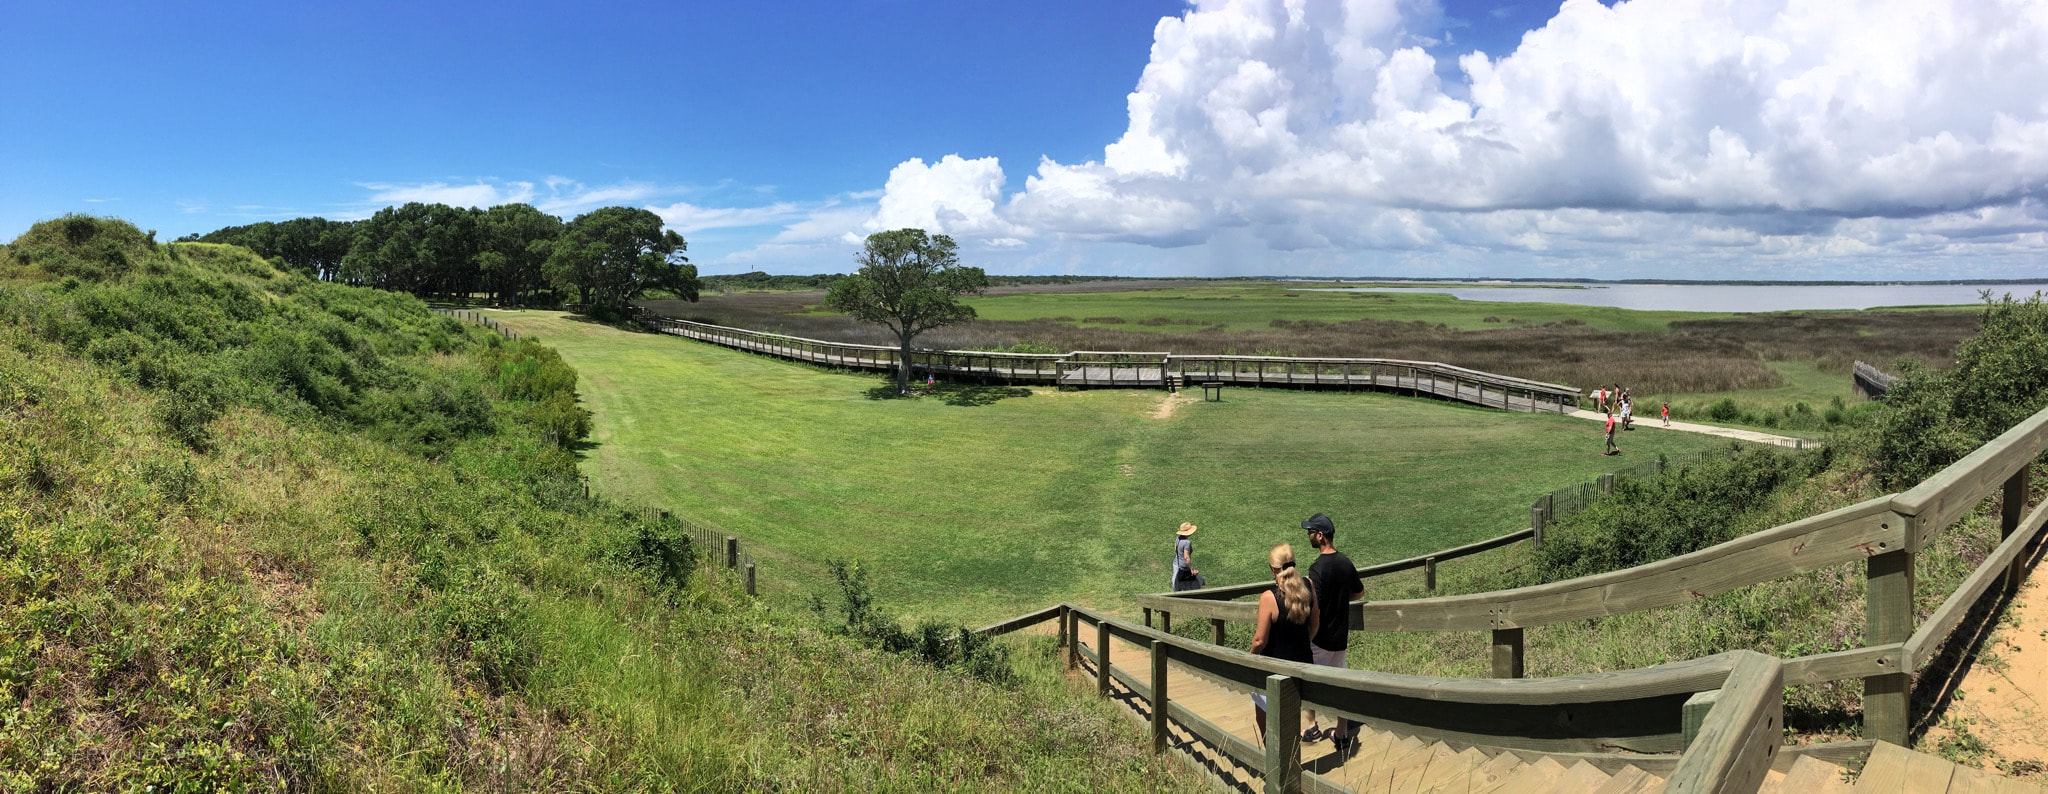 A panorama of the trails and mounds at Fort Fisher State Park in NC